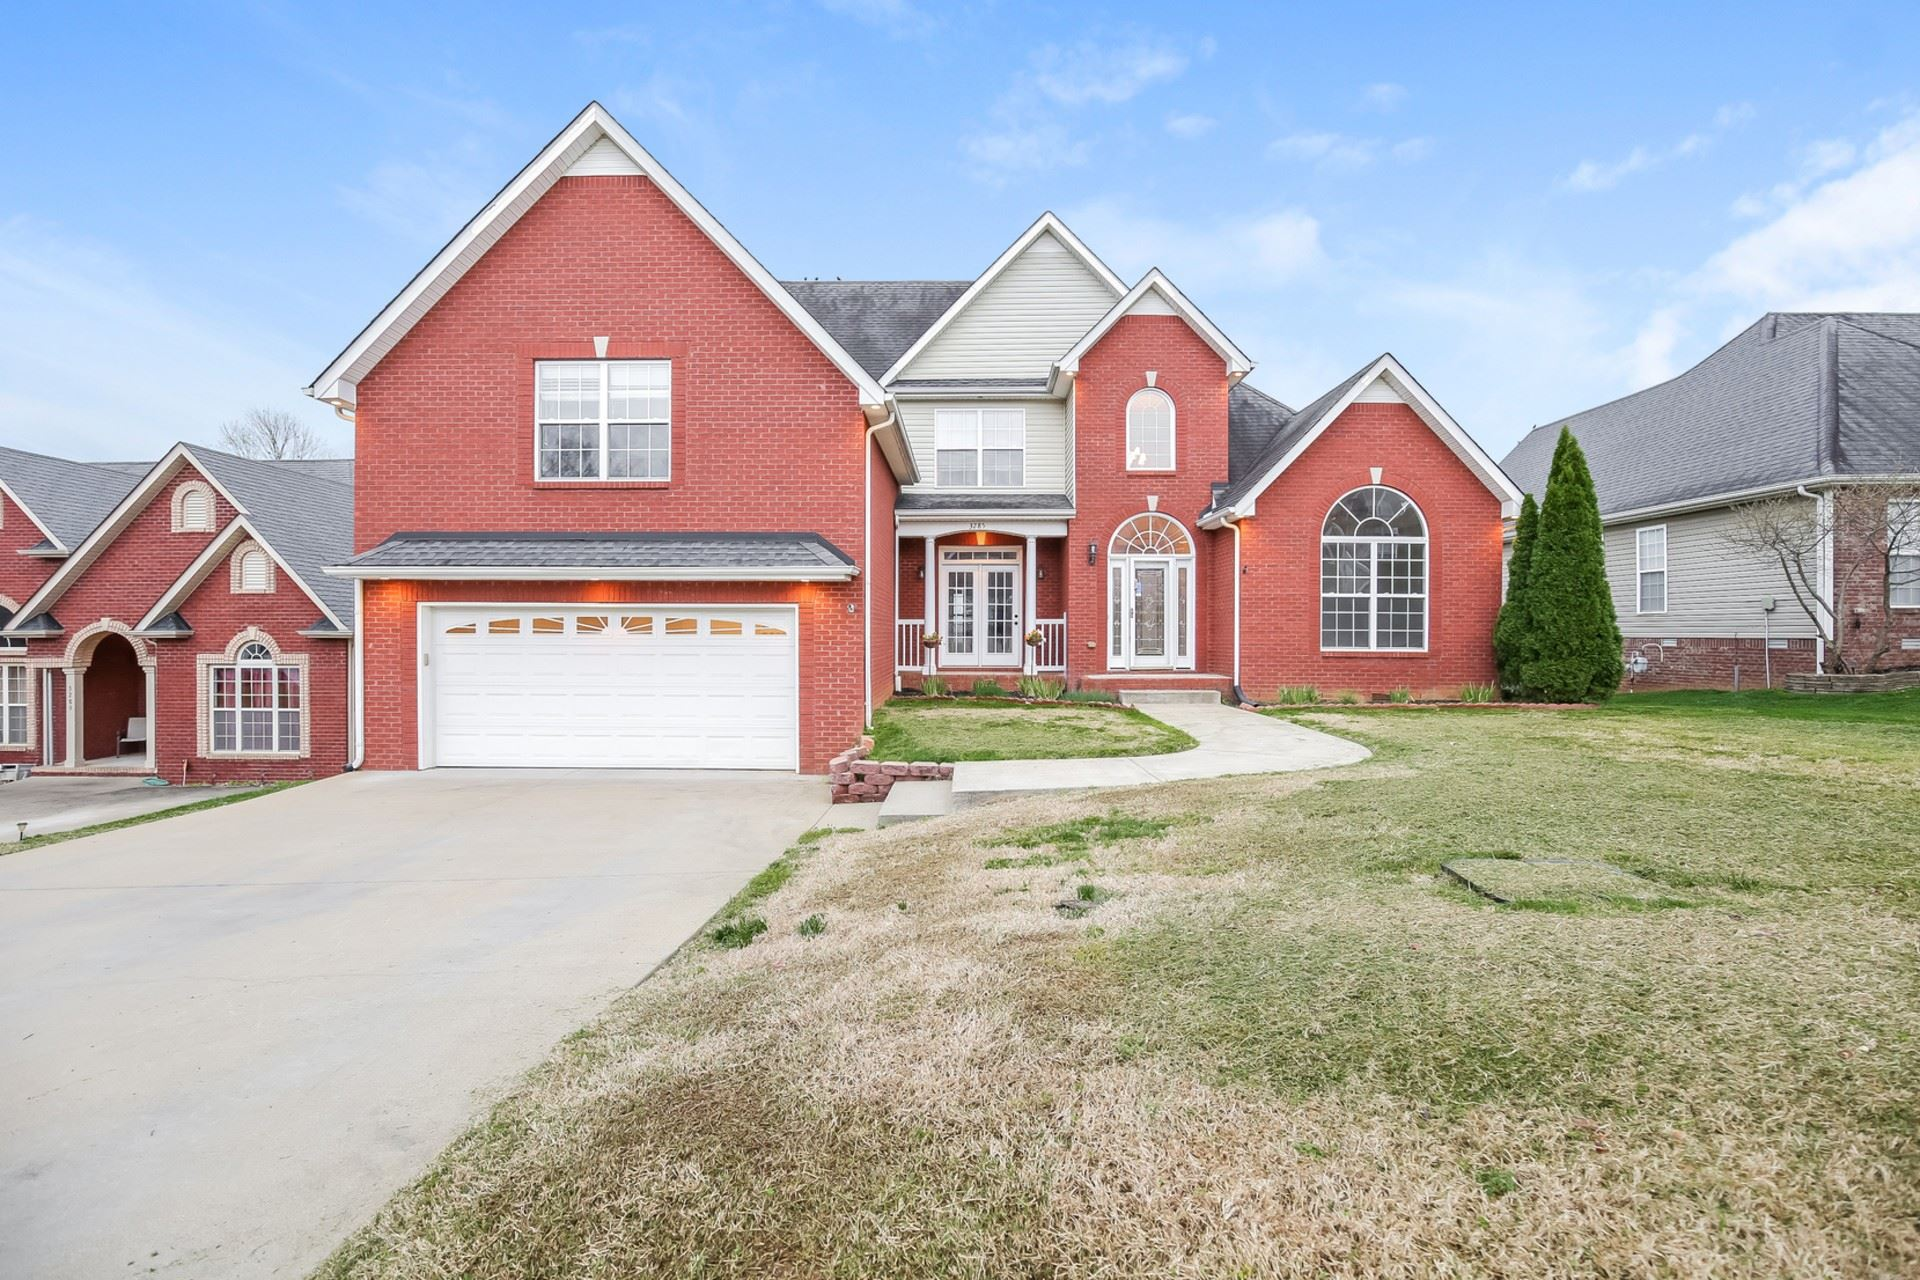 3285 Timberdale Dr, Clarksville, TN 37042 - MLS#: 2239730